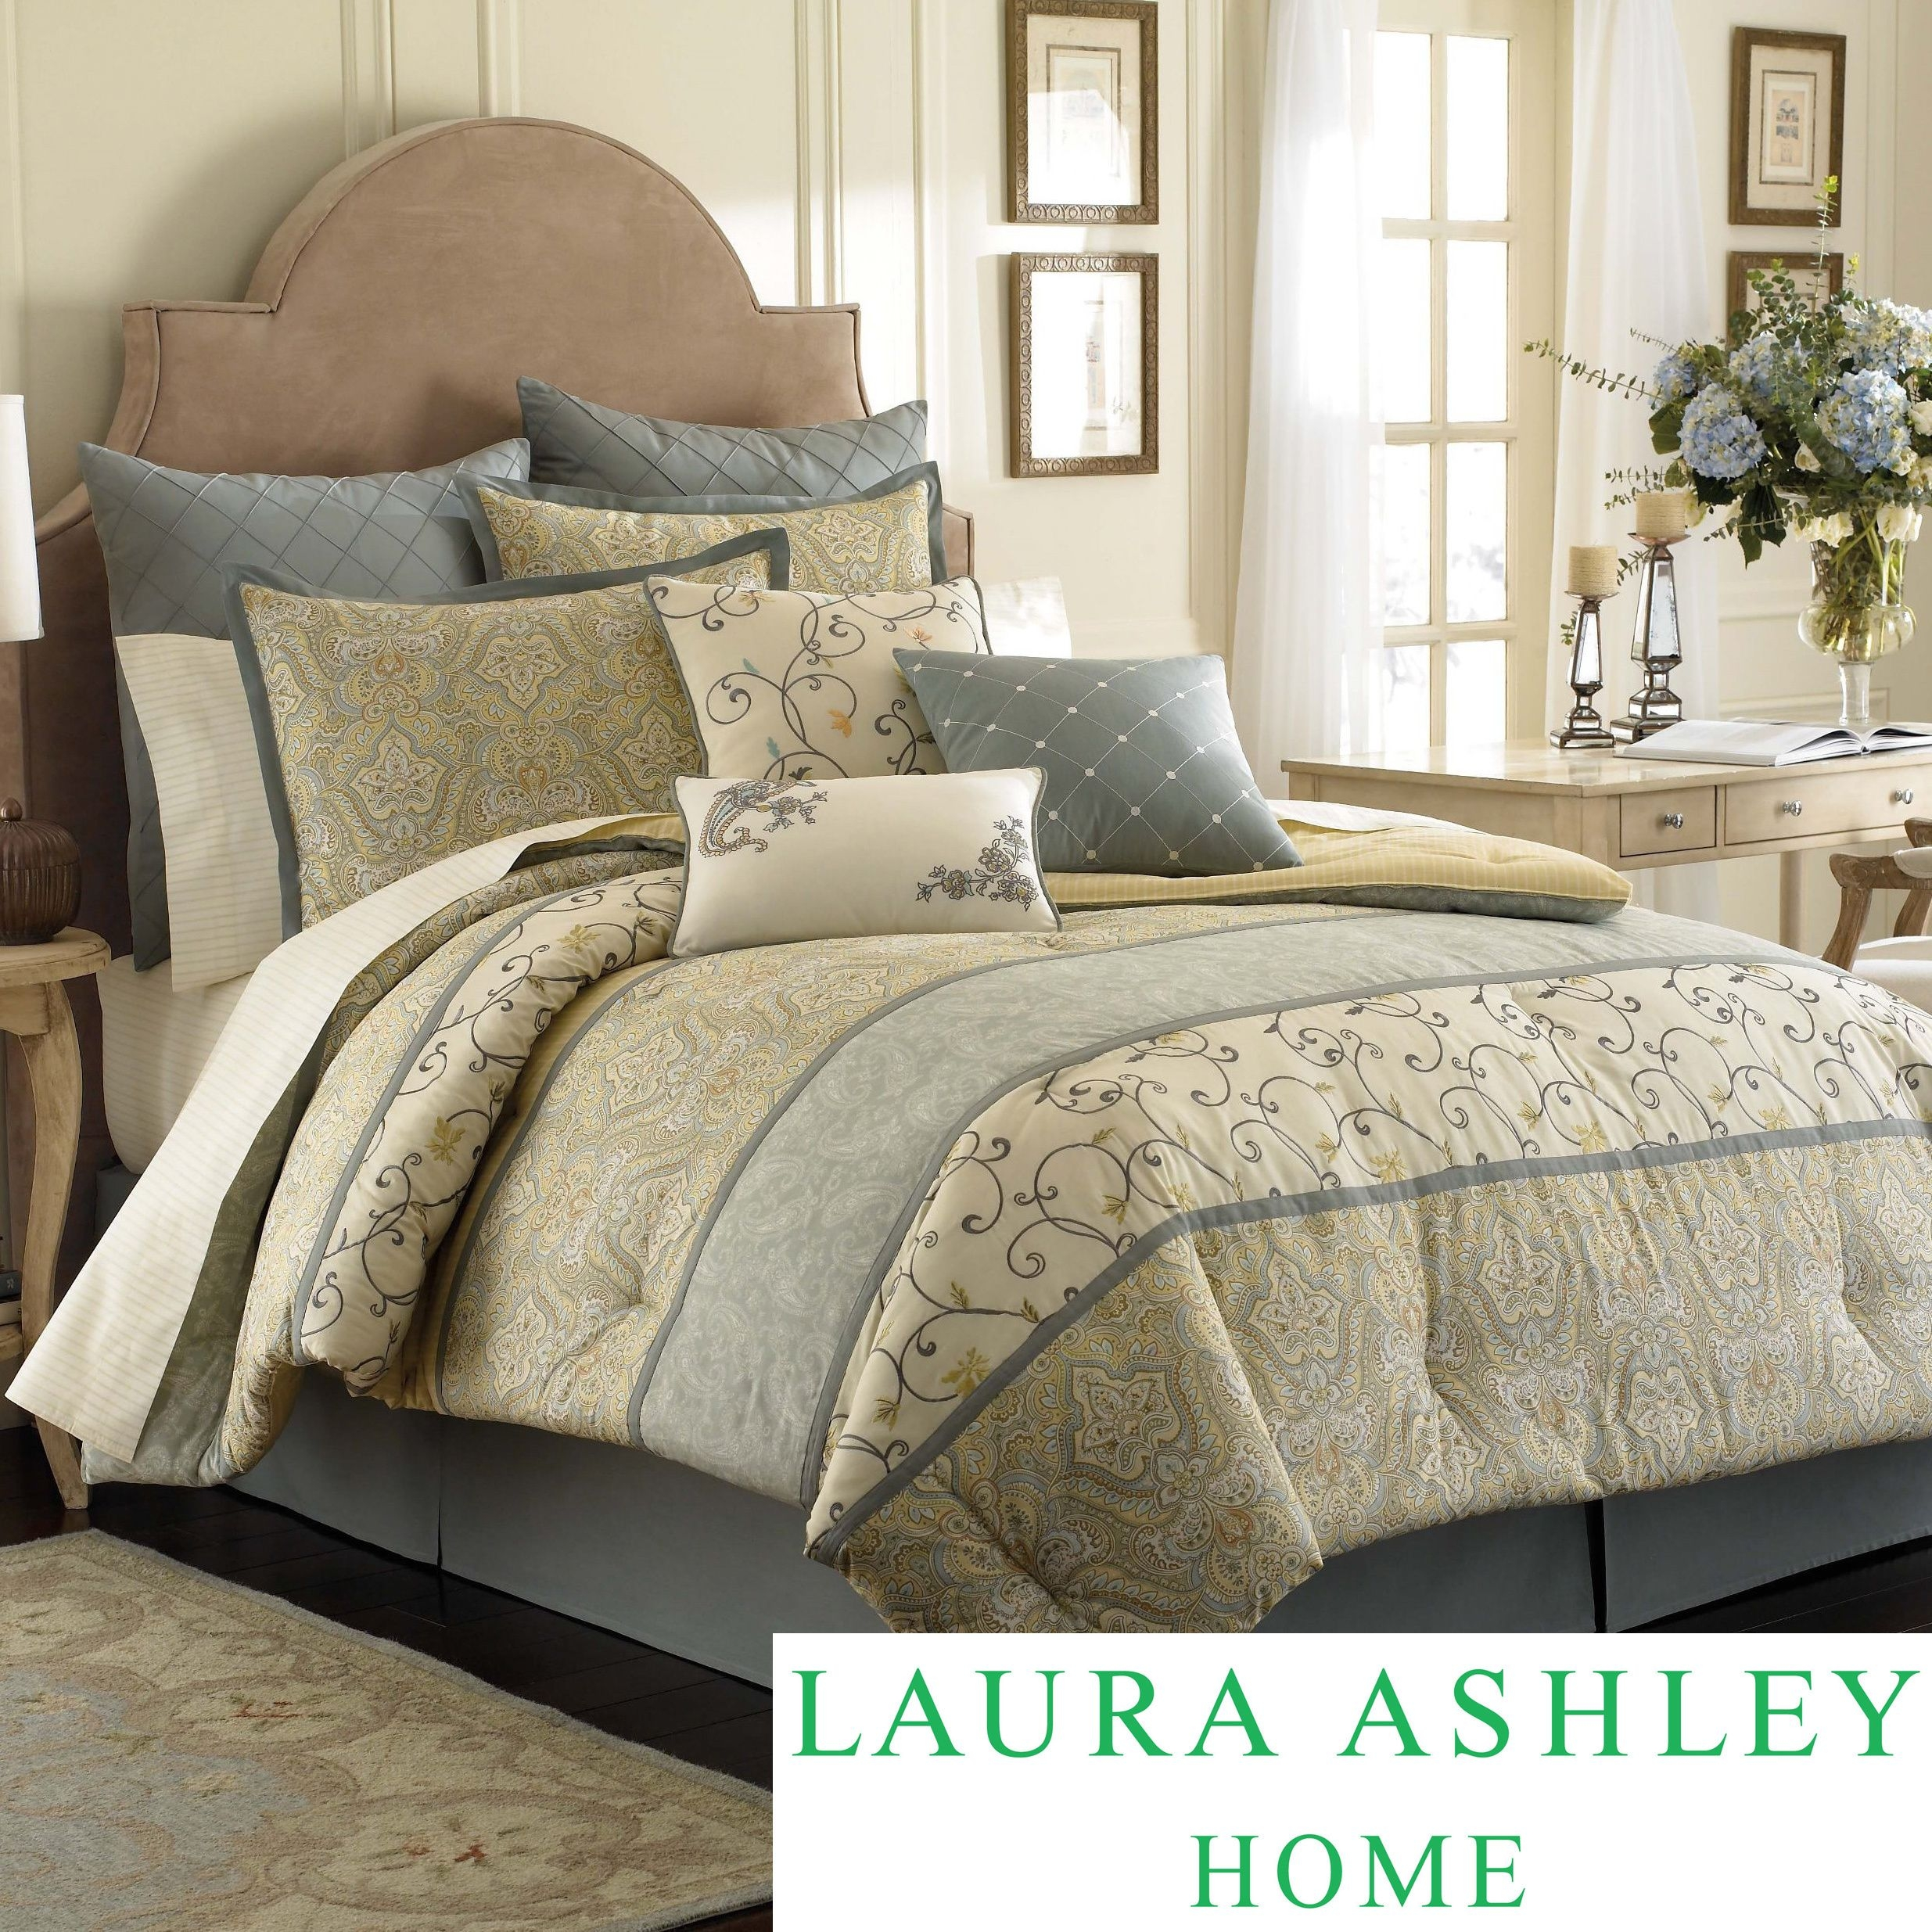 Laura Ashley Berkely is a beautiful bed featuring panels